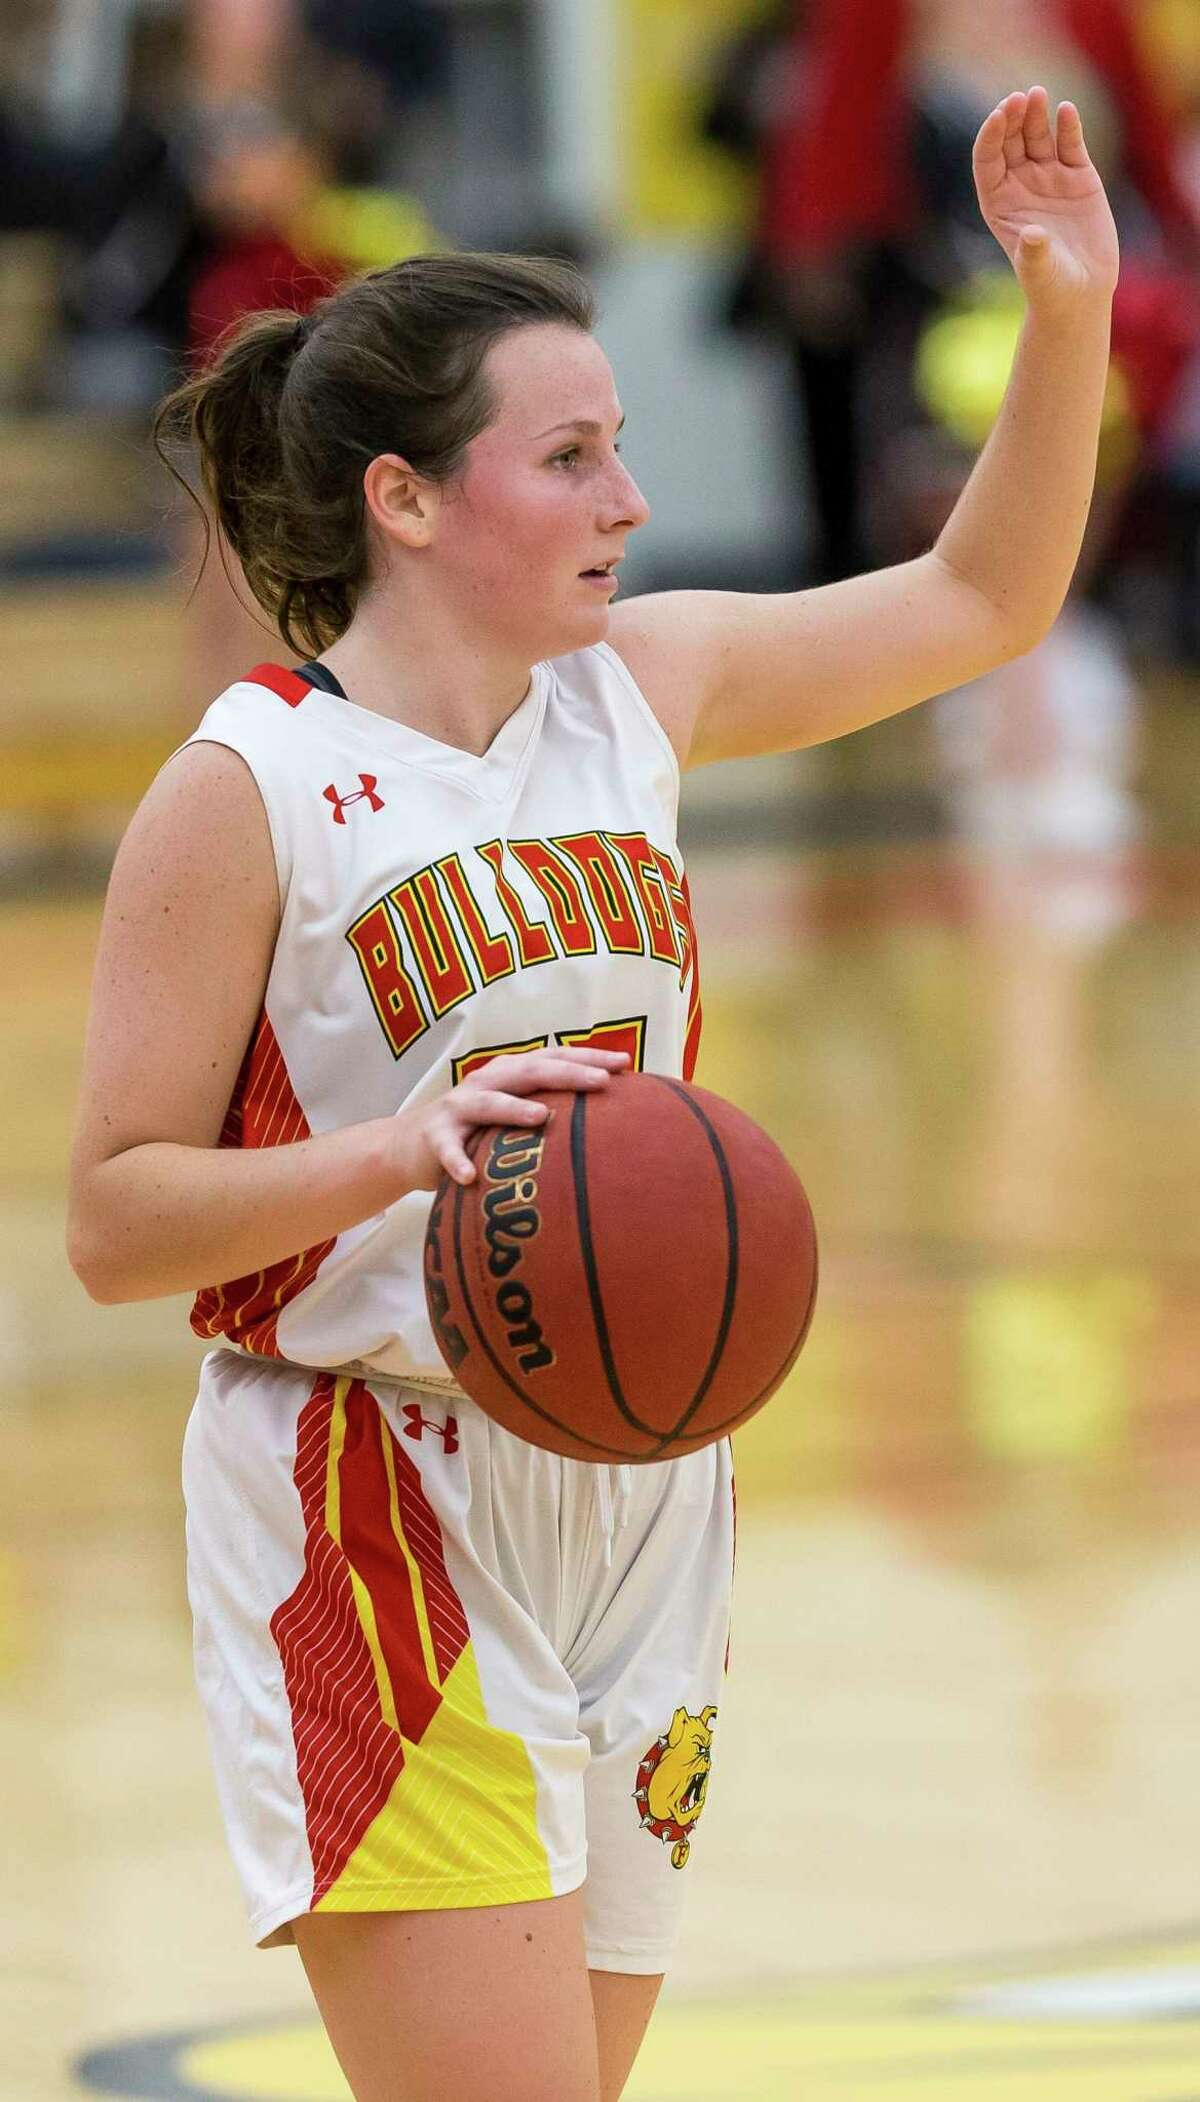 Mallory McCartney scored a career-best 38 points on 15-of-21 shooting for Ferris on Saturday at Purdue Northwest. (Pioneer file photo)